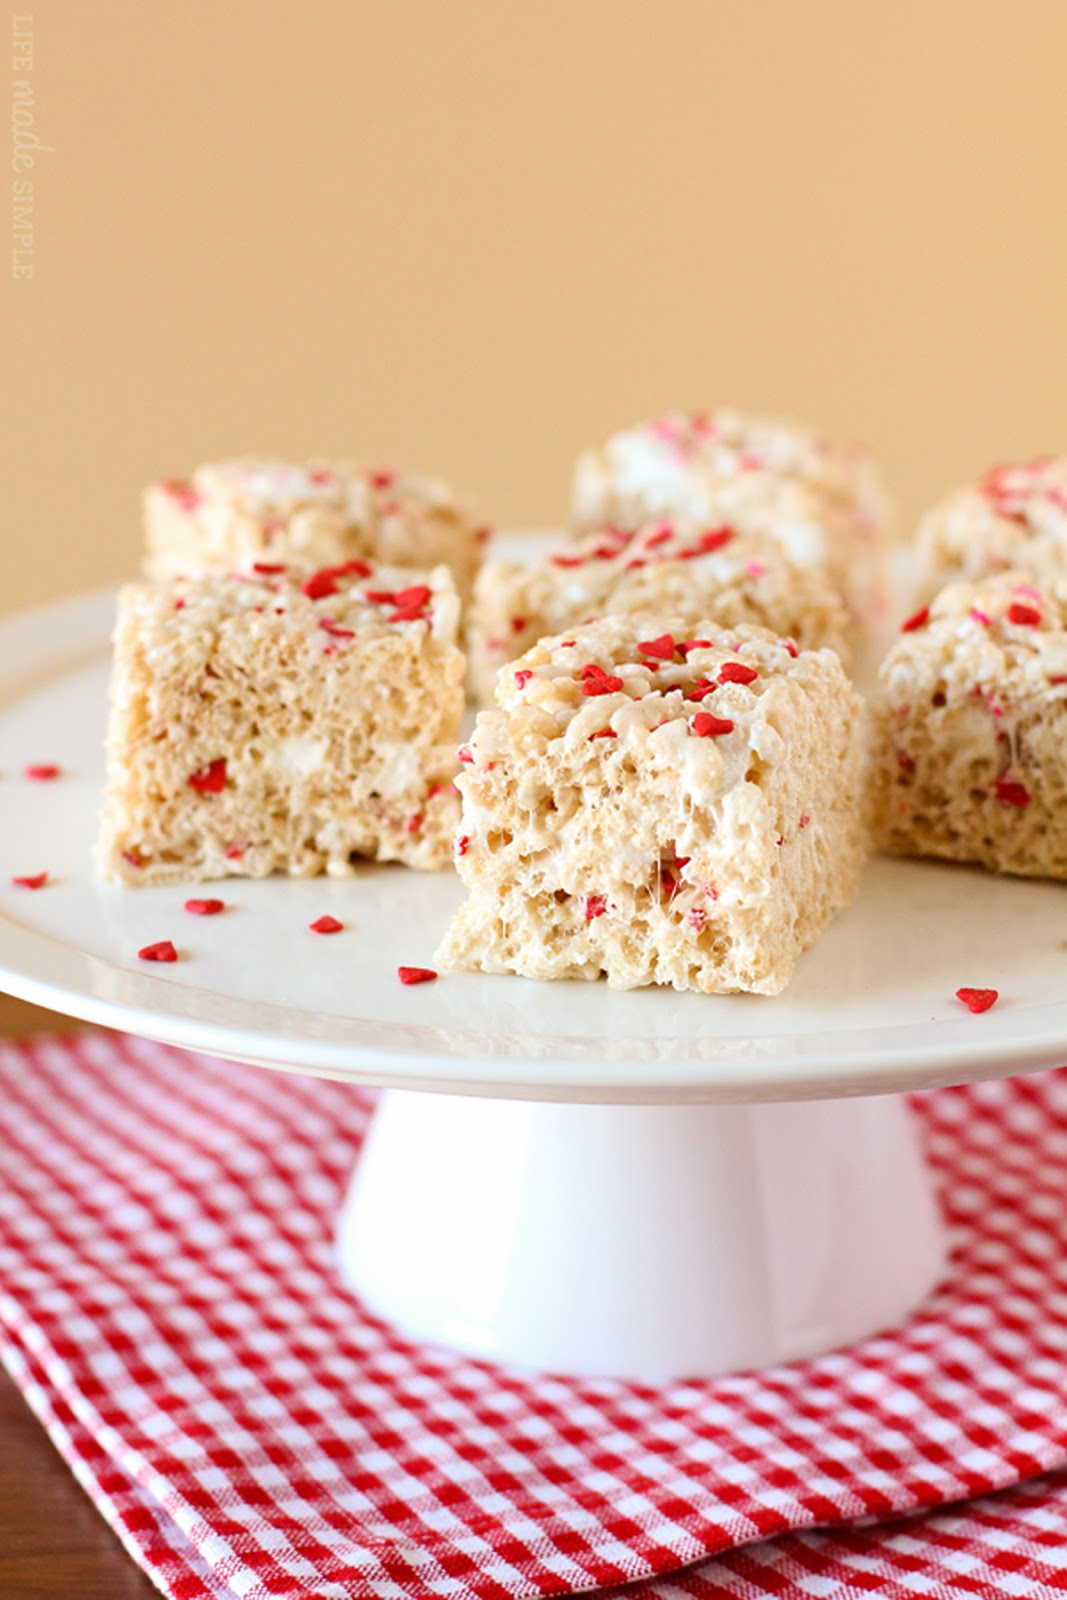 Life Made Simple: Gooey Rice Krispie Treats